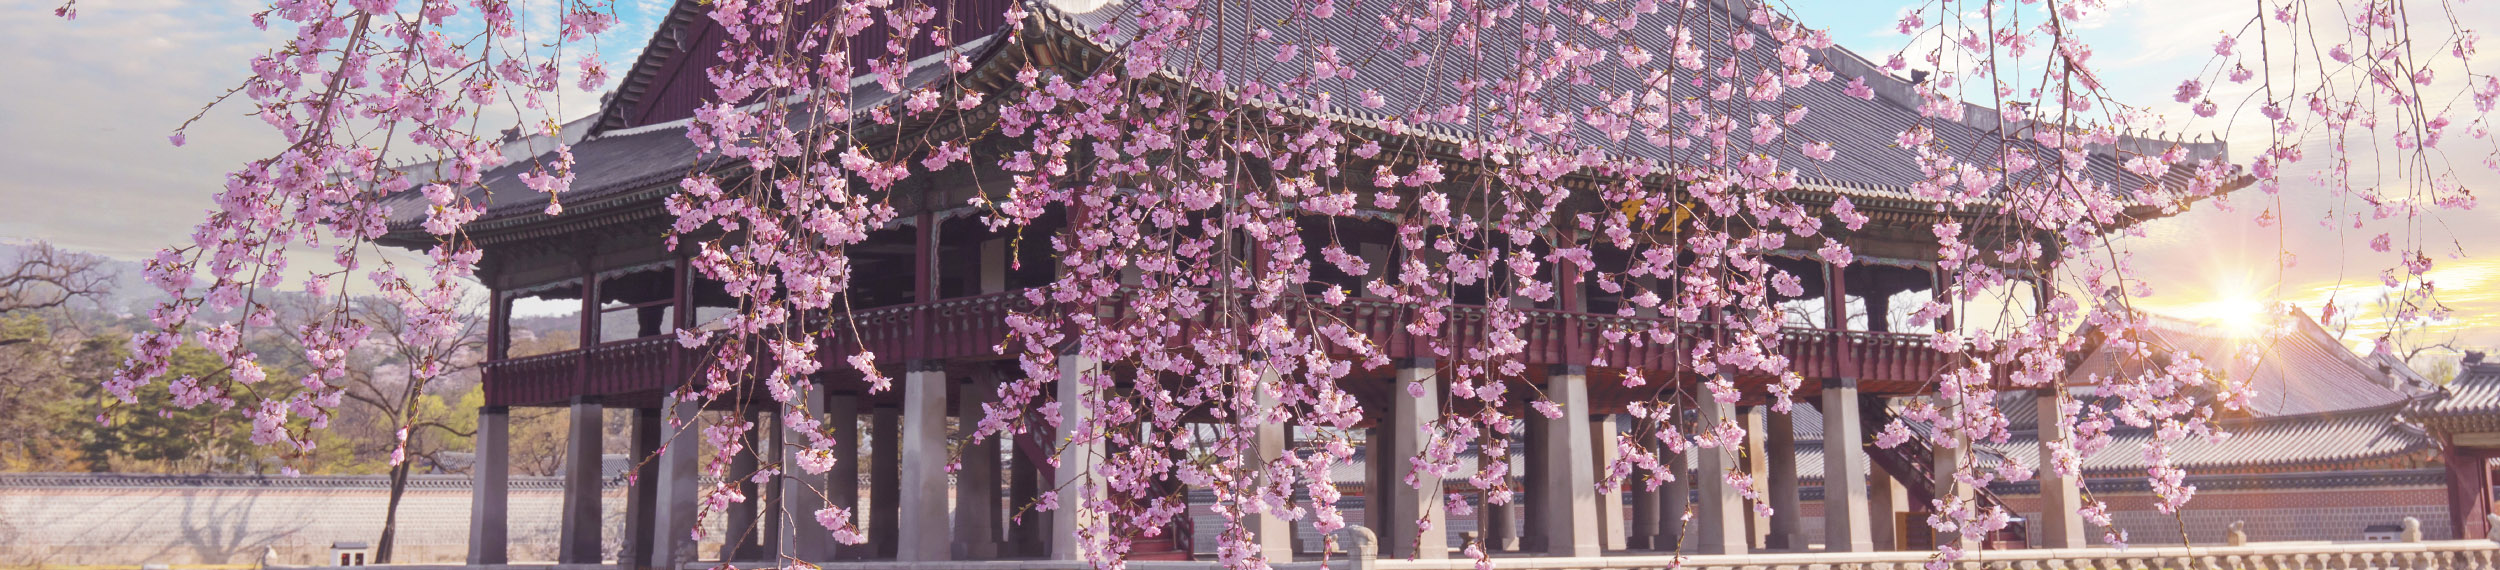 Cherry Blossom in spring at Gyeongbokgung Palace  Seoul, South Korea.